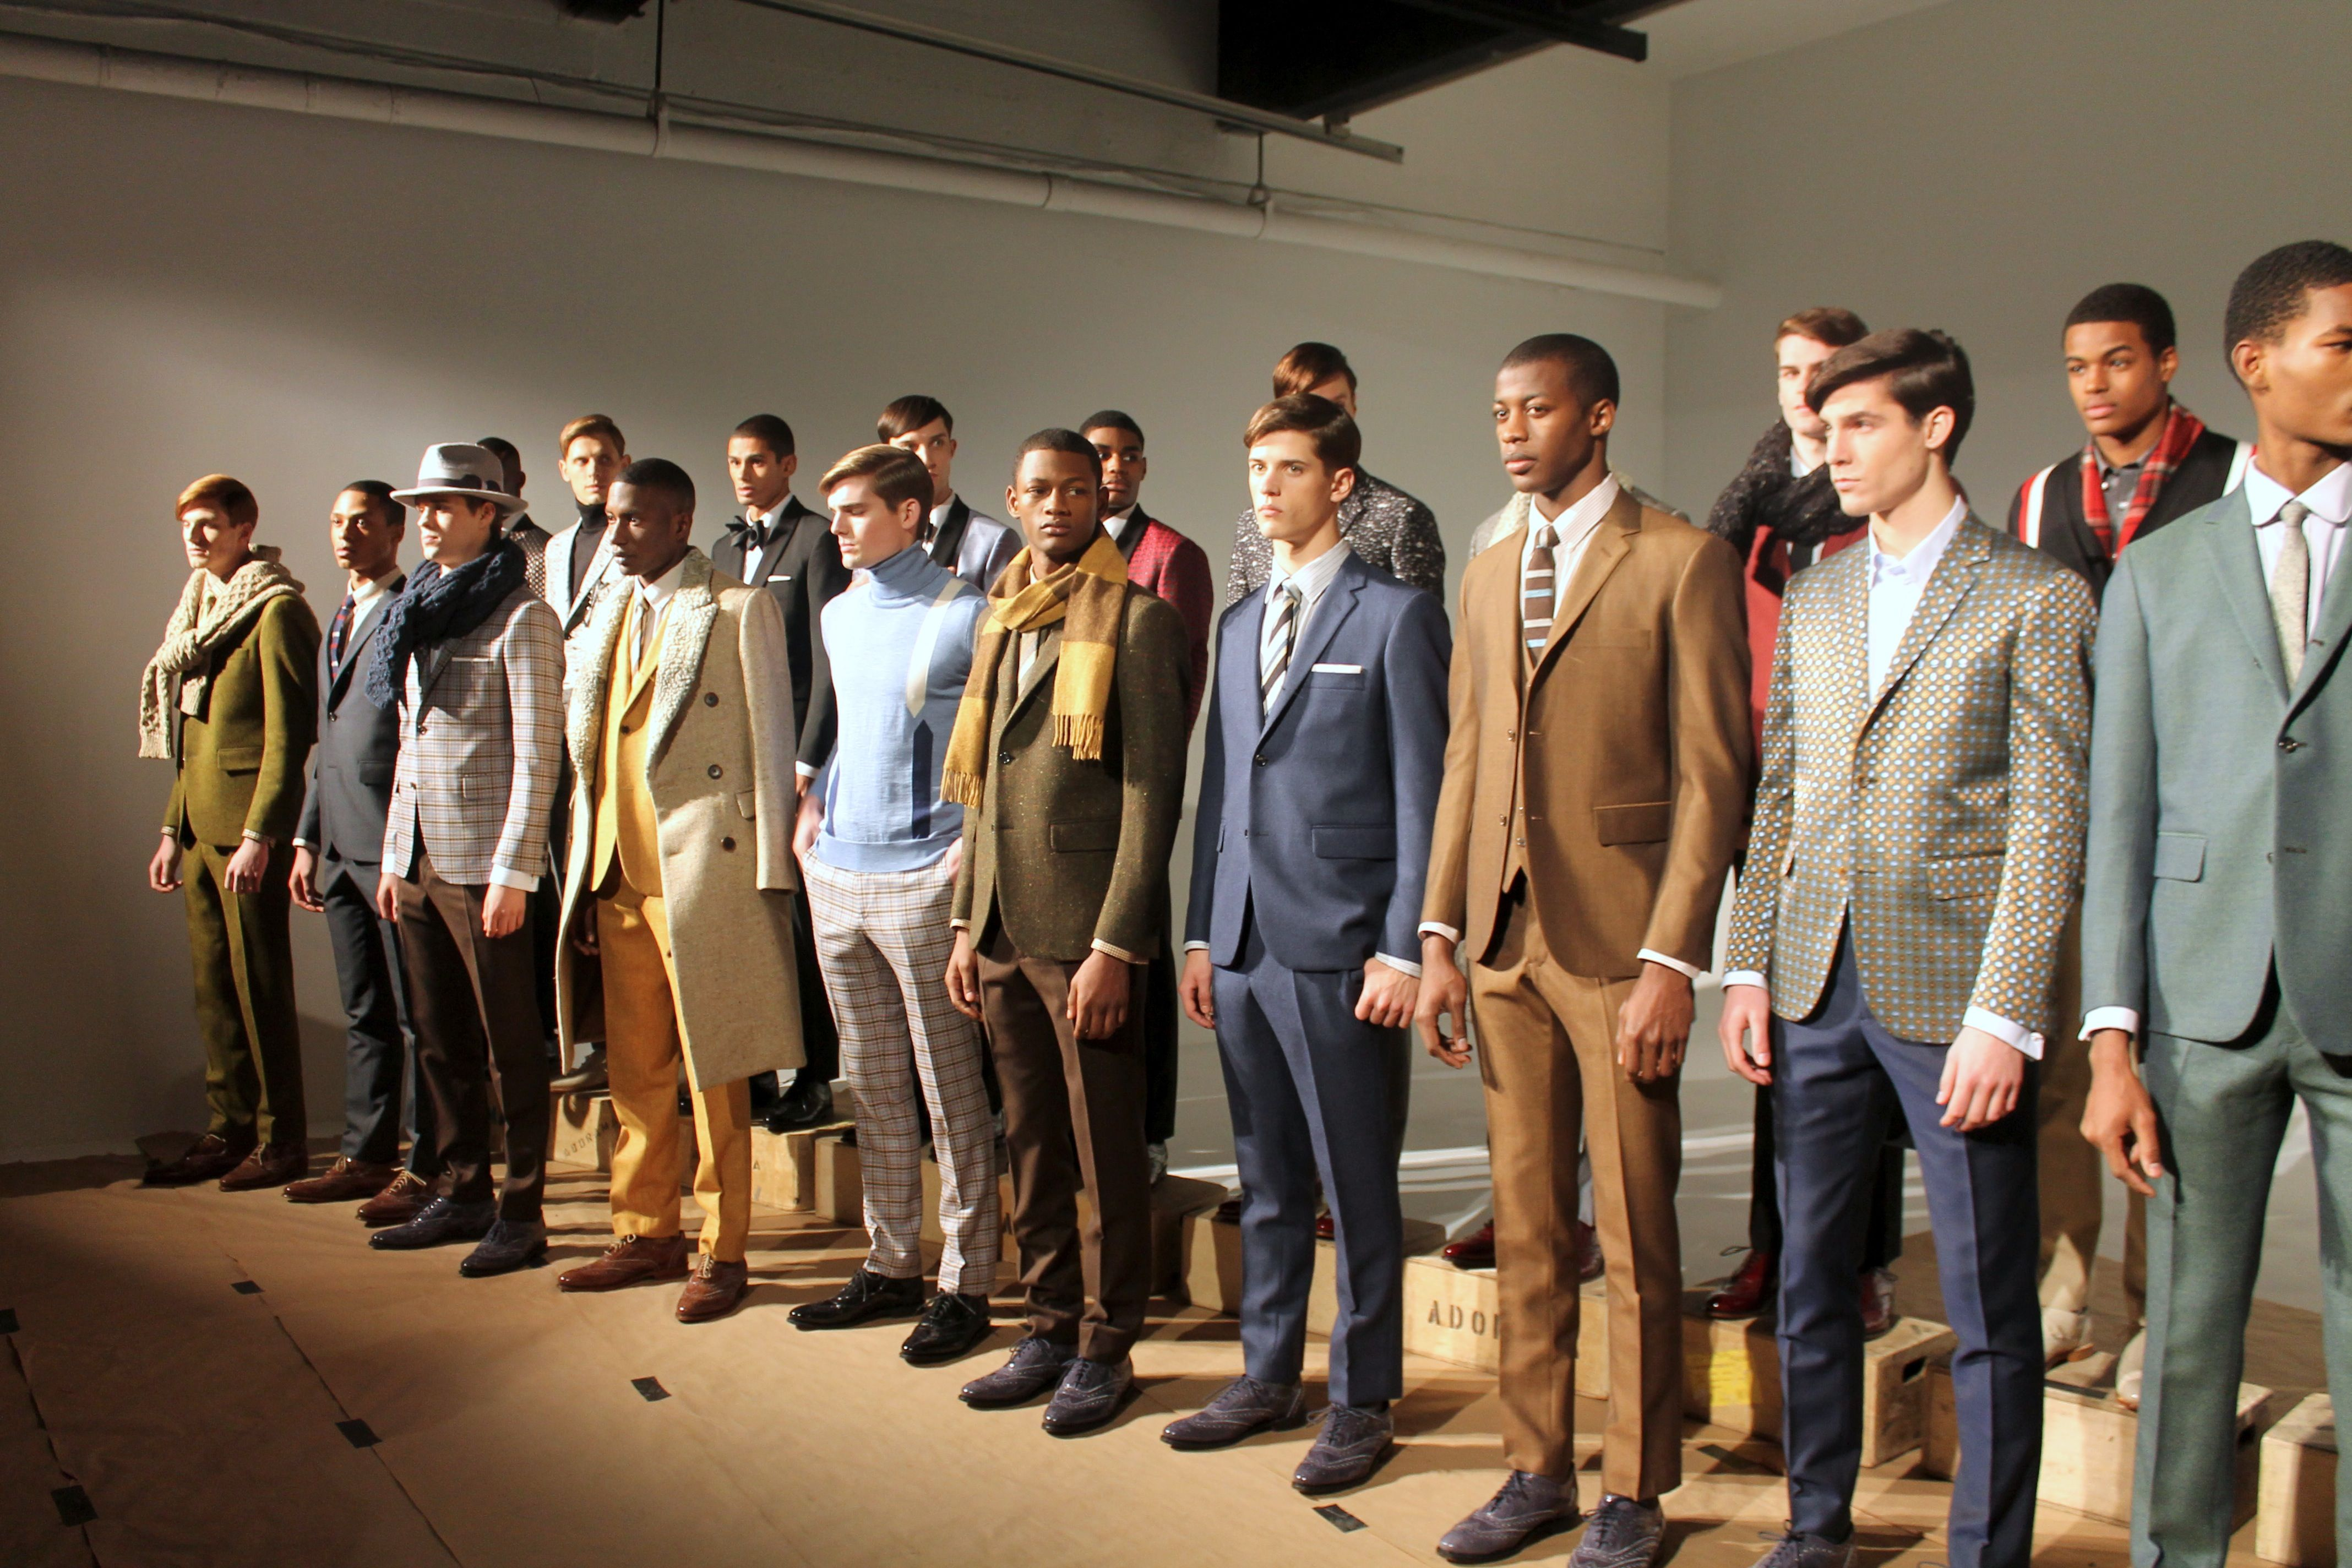 """NYFW FW14: David Hart's """"Twilight Zone""""-inspired Fitted Suits & Vintage Styled Menswear   VeeTravels.com"""